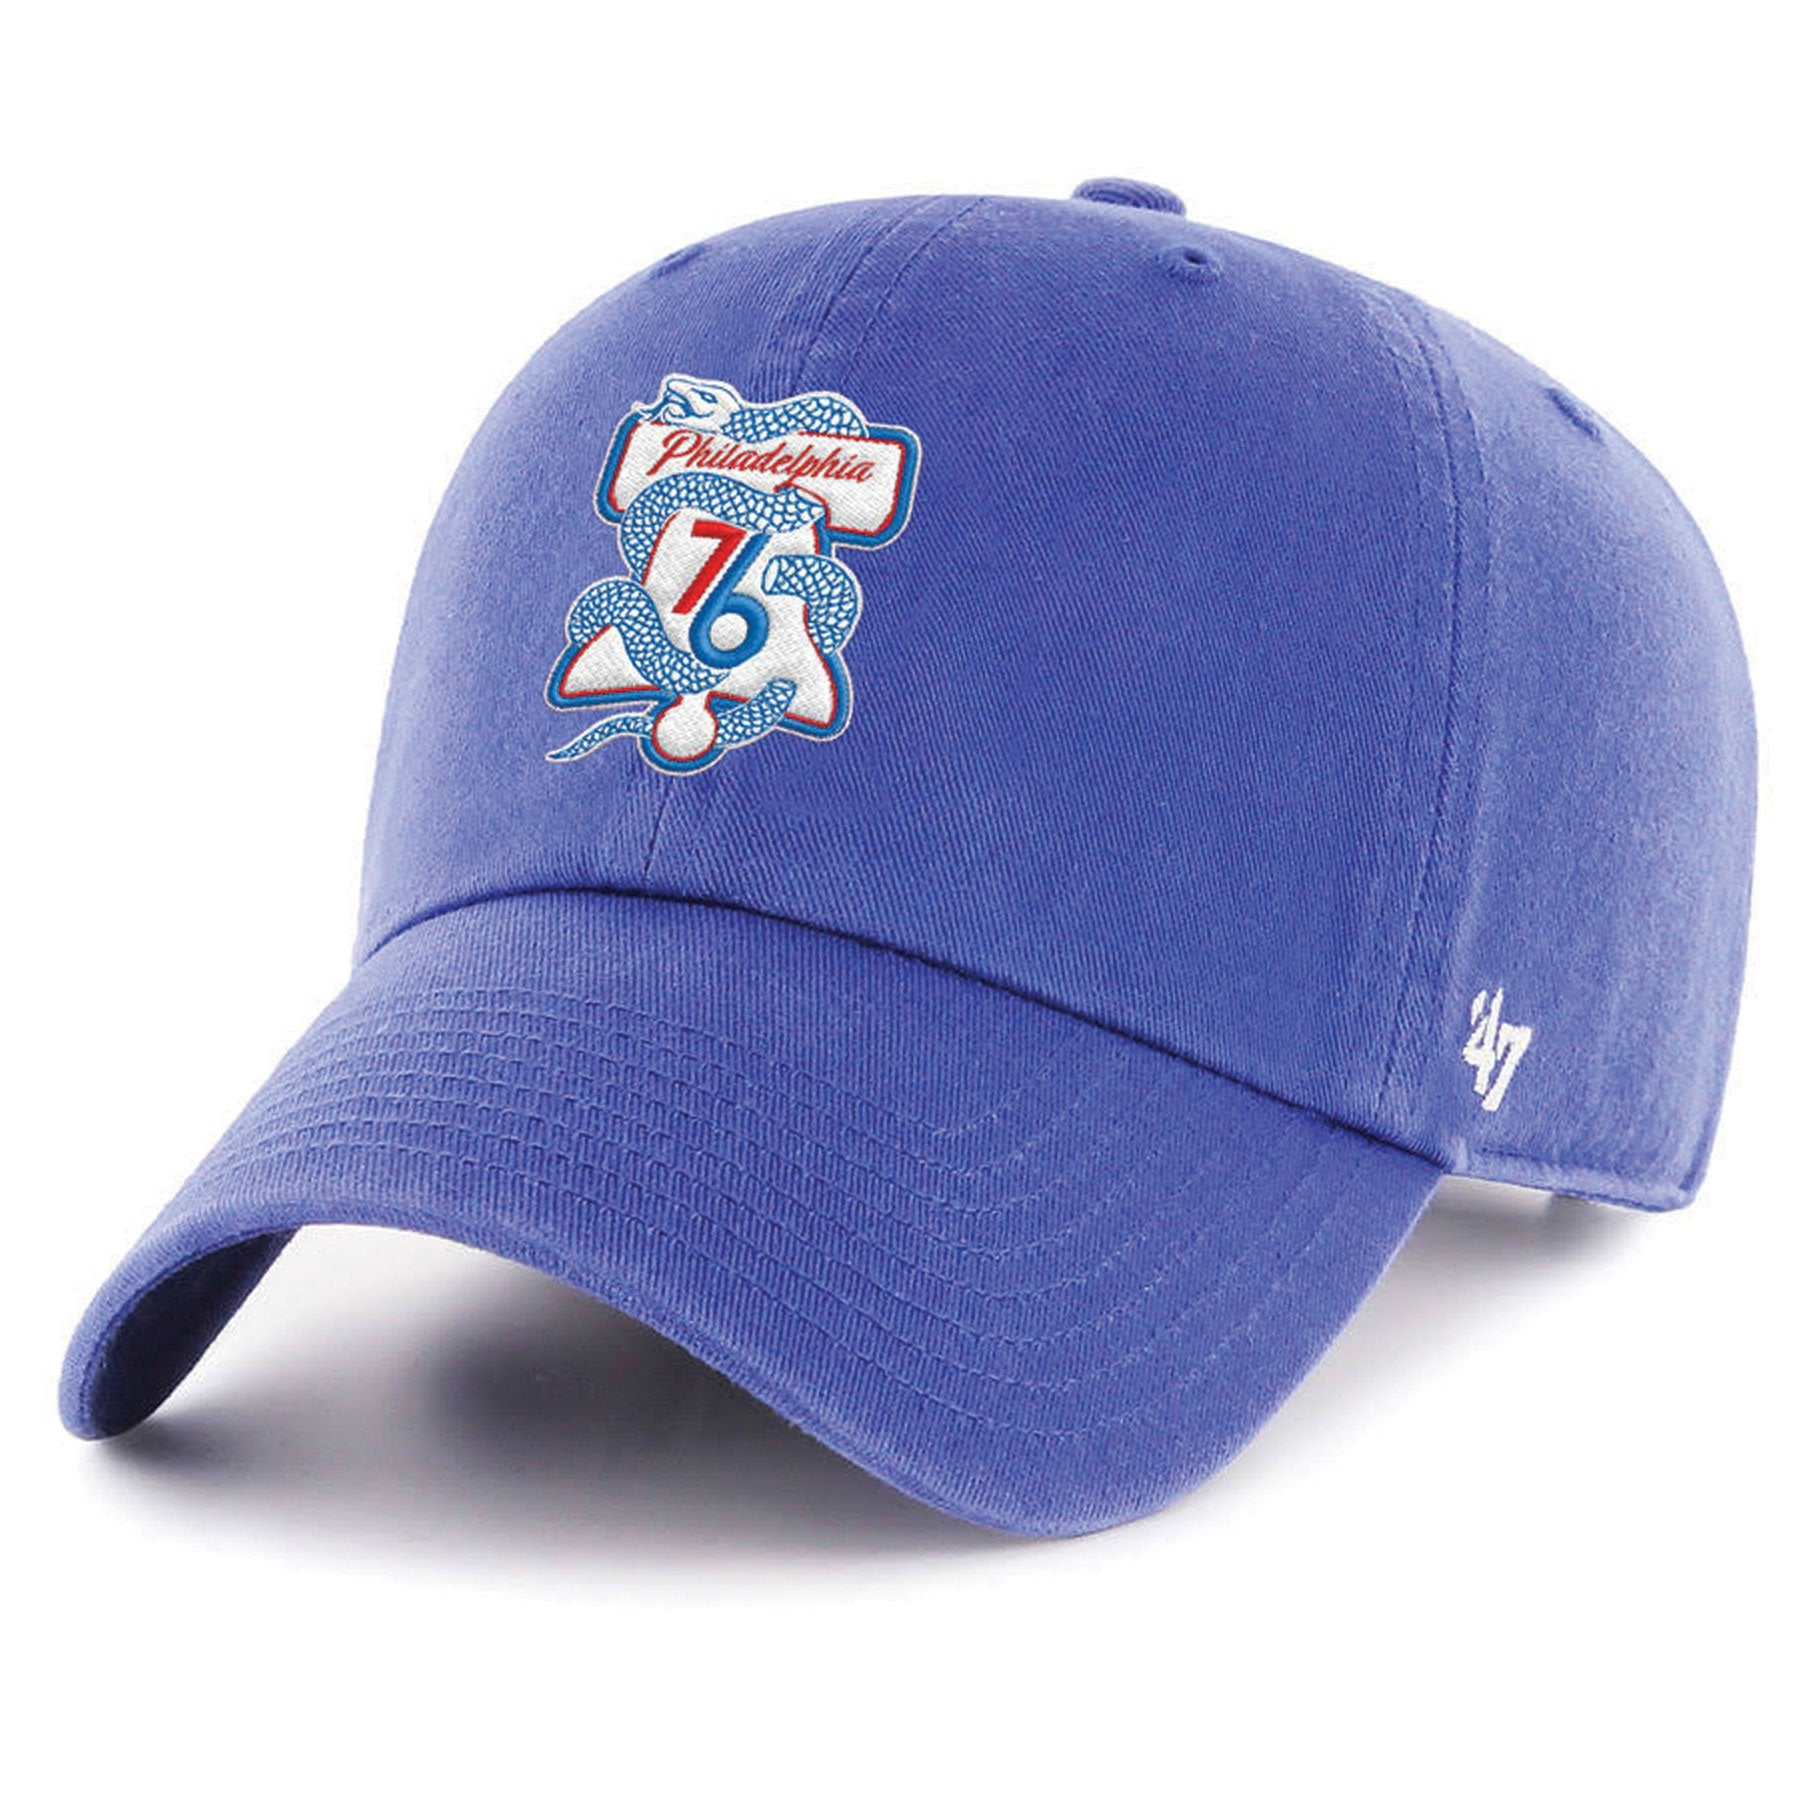 df8dce62 embroidered on the front of the philadelphia 76ers snake and liberty bell  dad hat is the